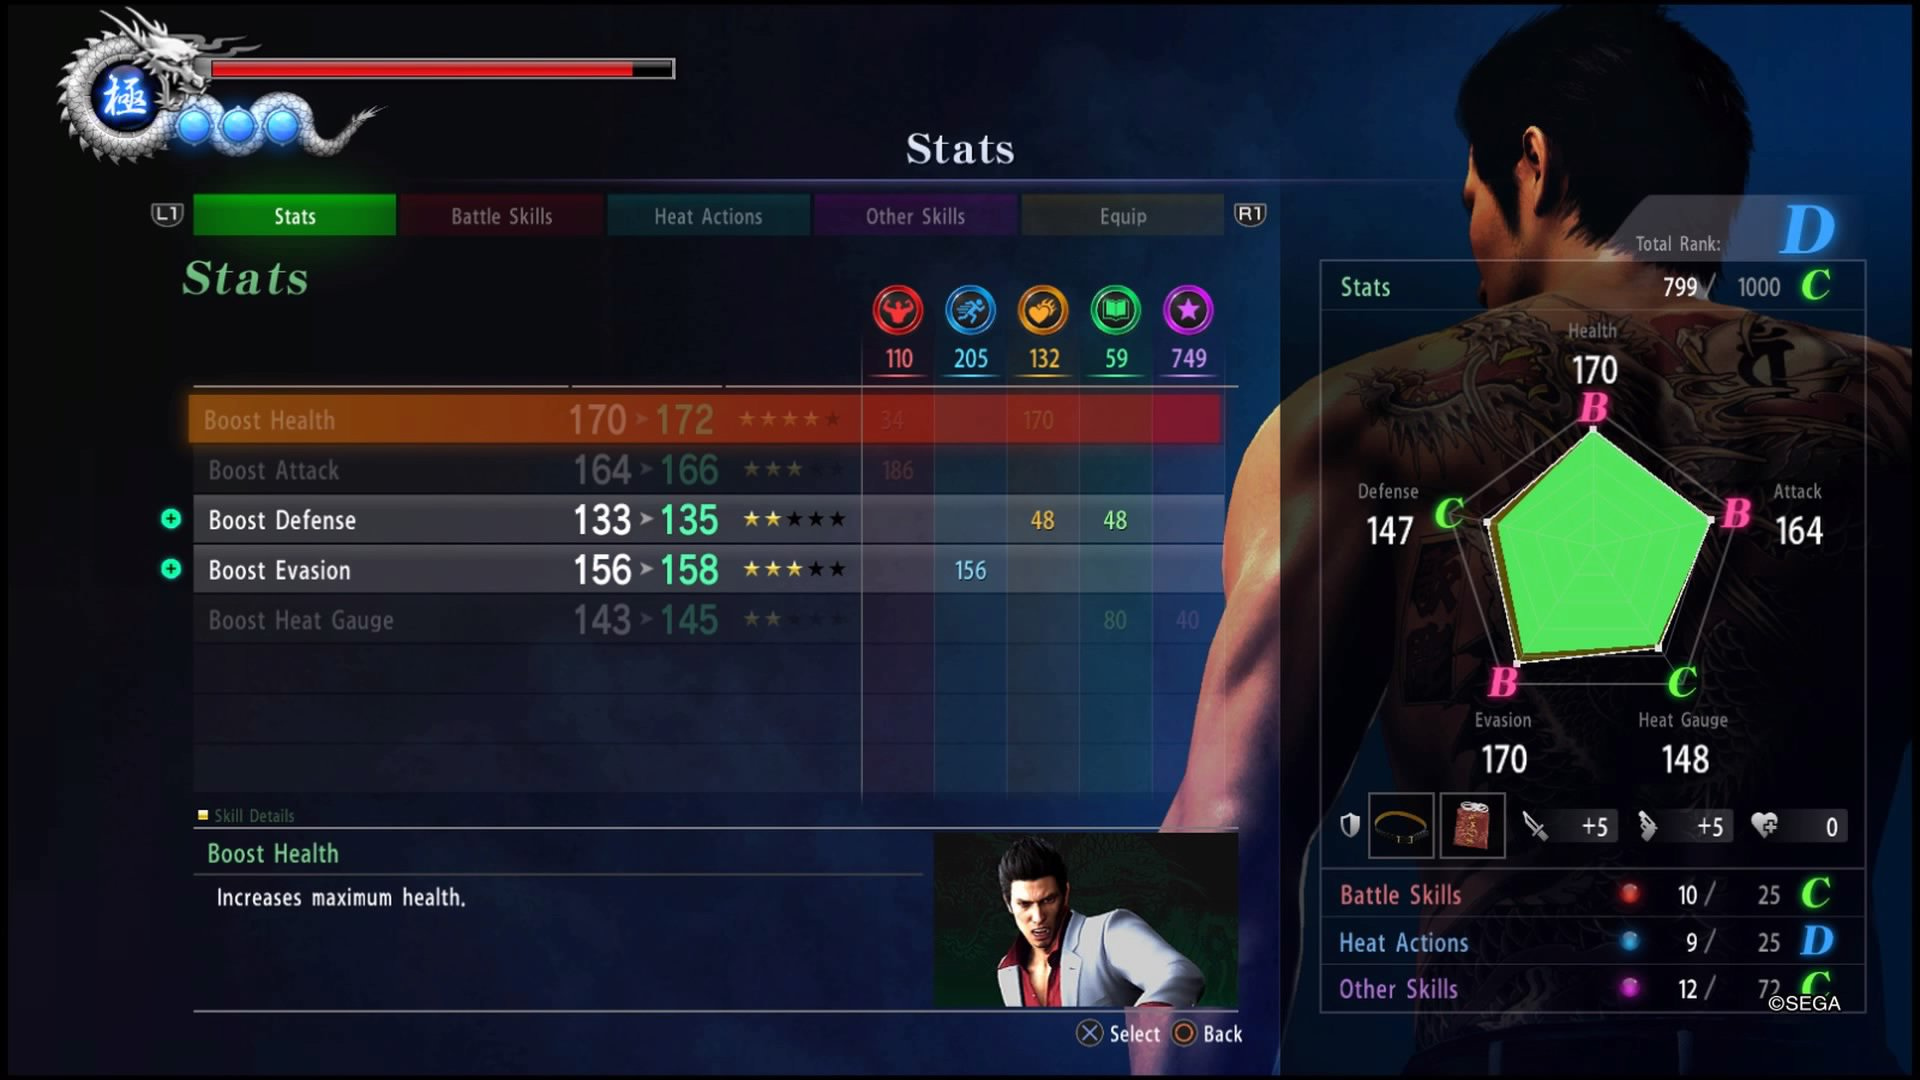 How To Earn EXP, How To Increase Kiryu's Stats, How To Unlock New Combat